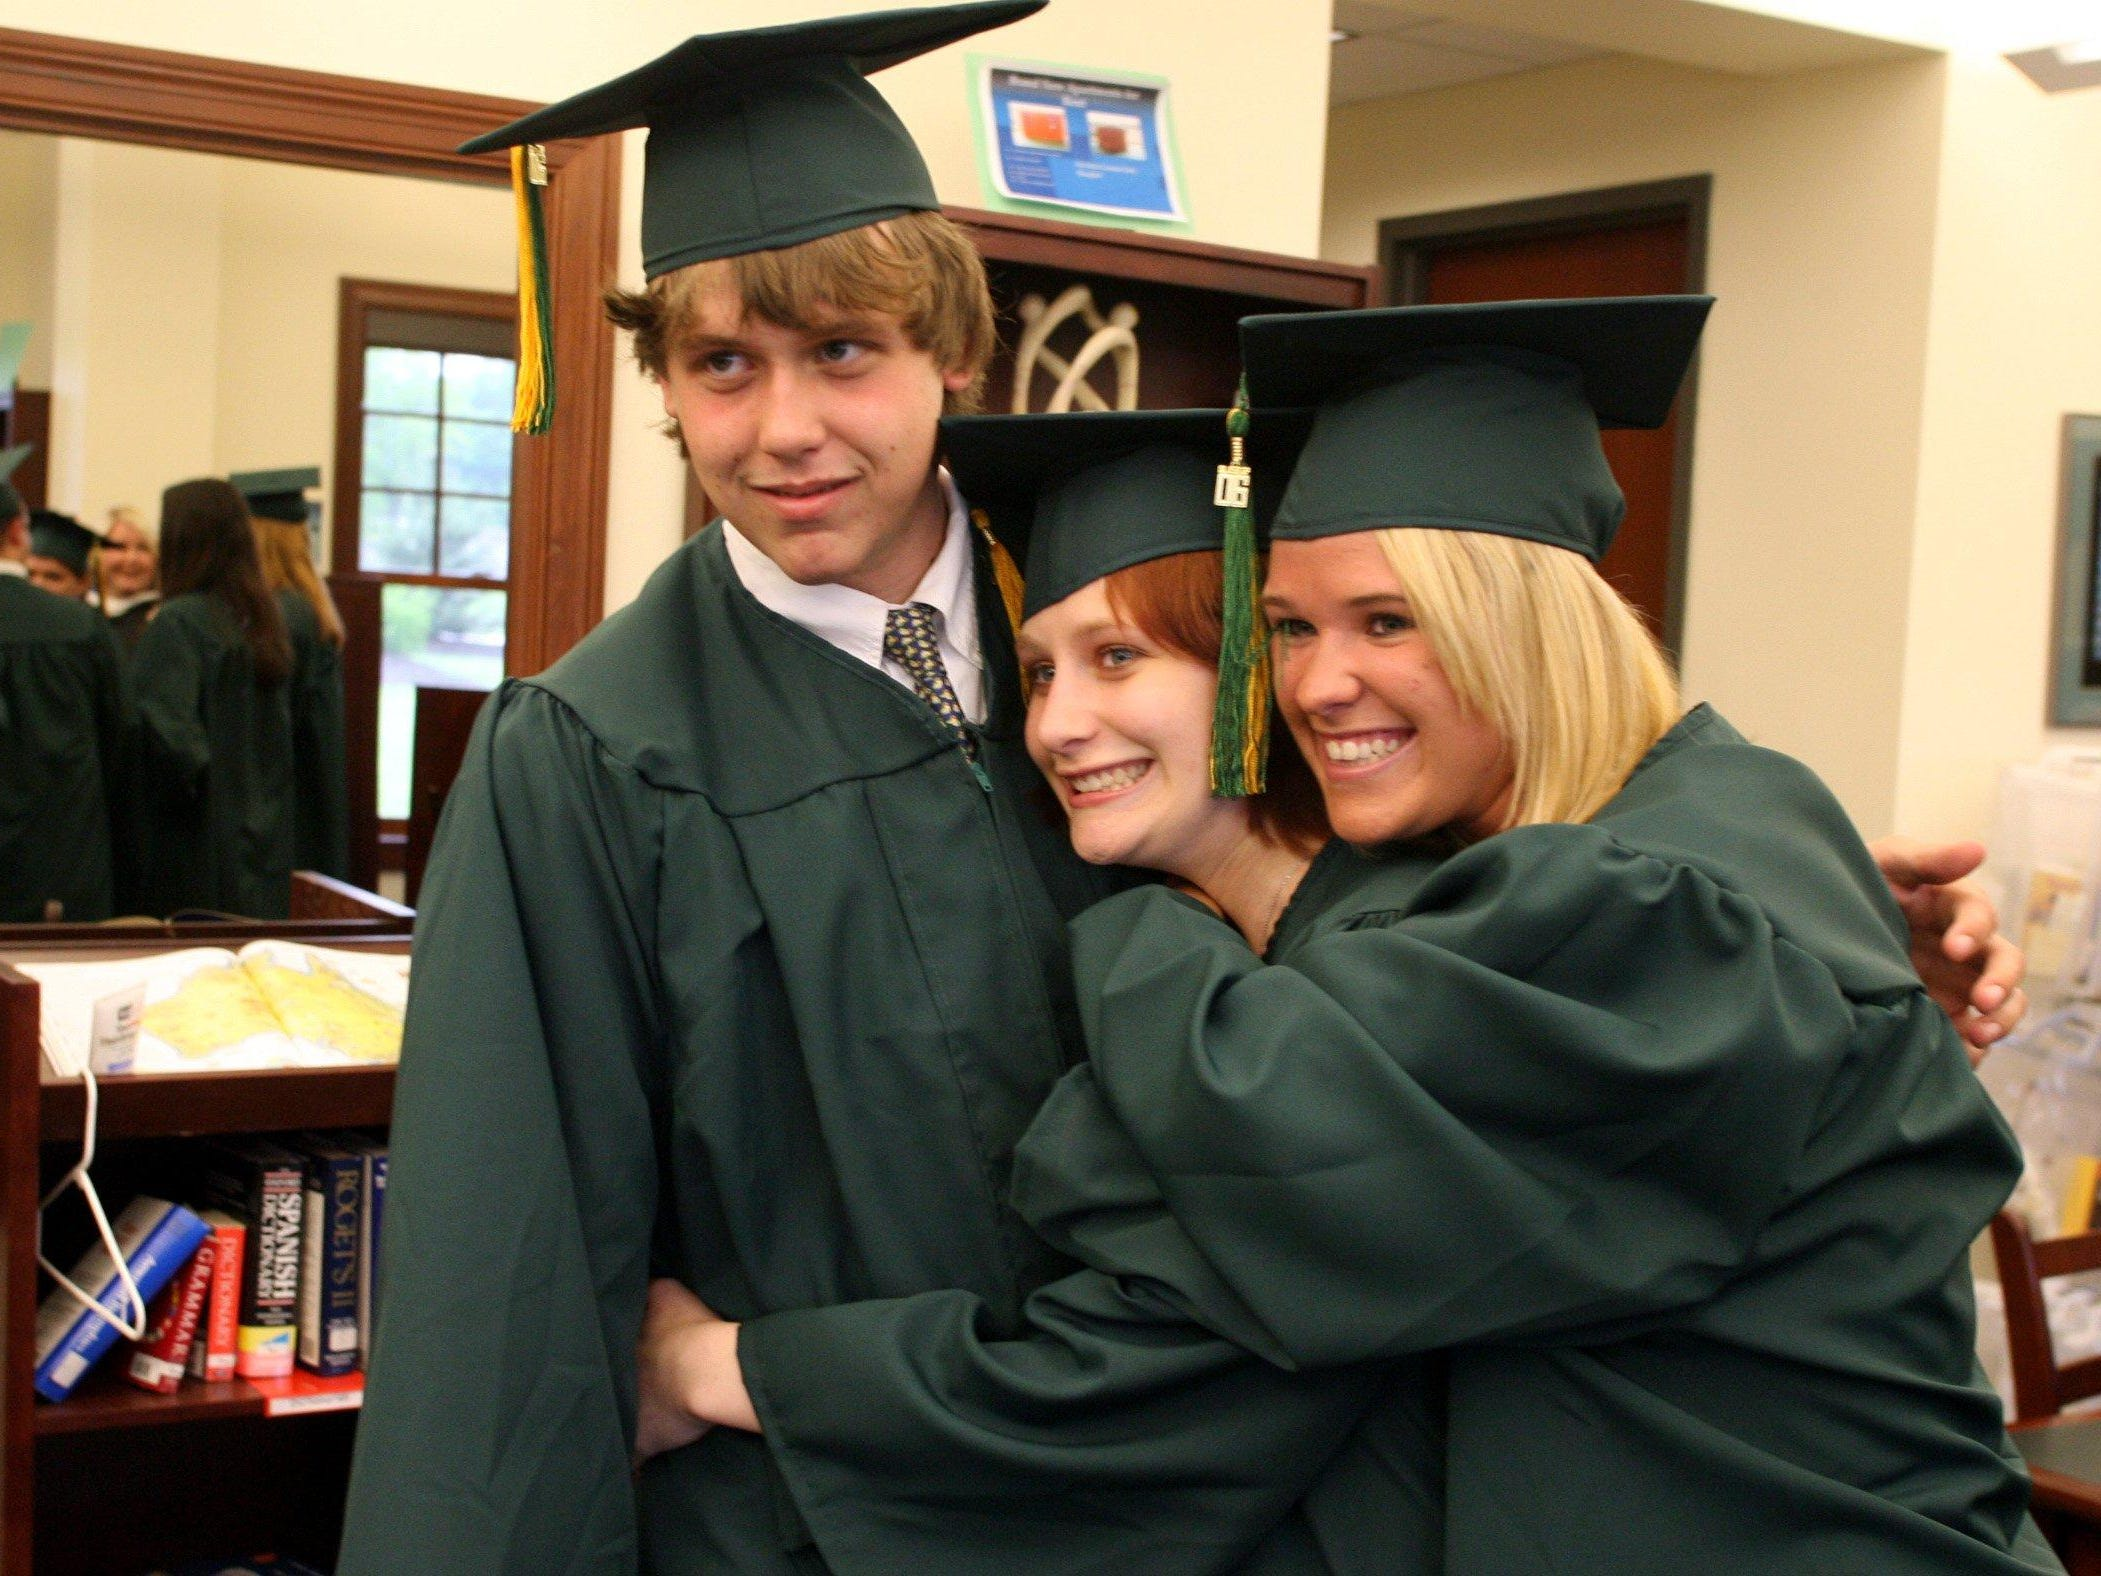 Robertson Andrews, Heather Thompson and Joy Ash embrace as students prepare to graduate at Currey Ingram Academy in 2006.